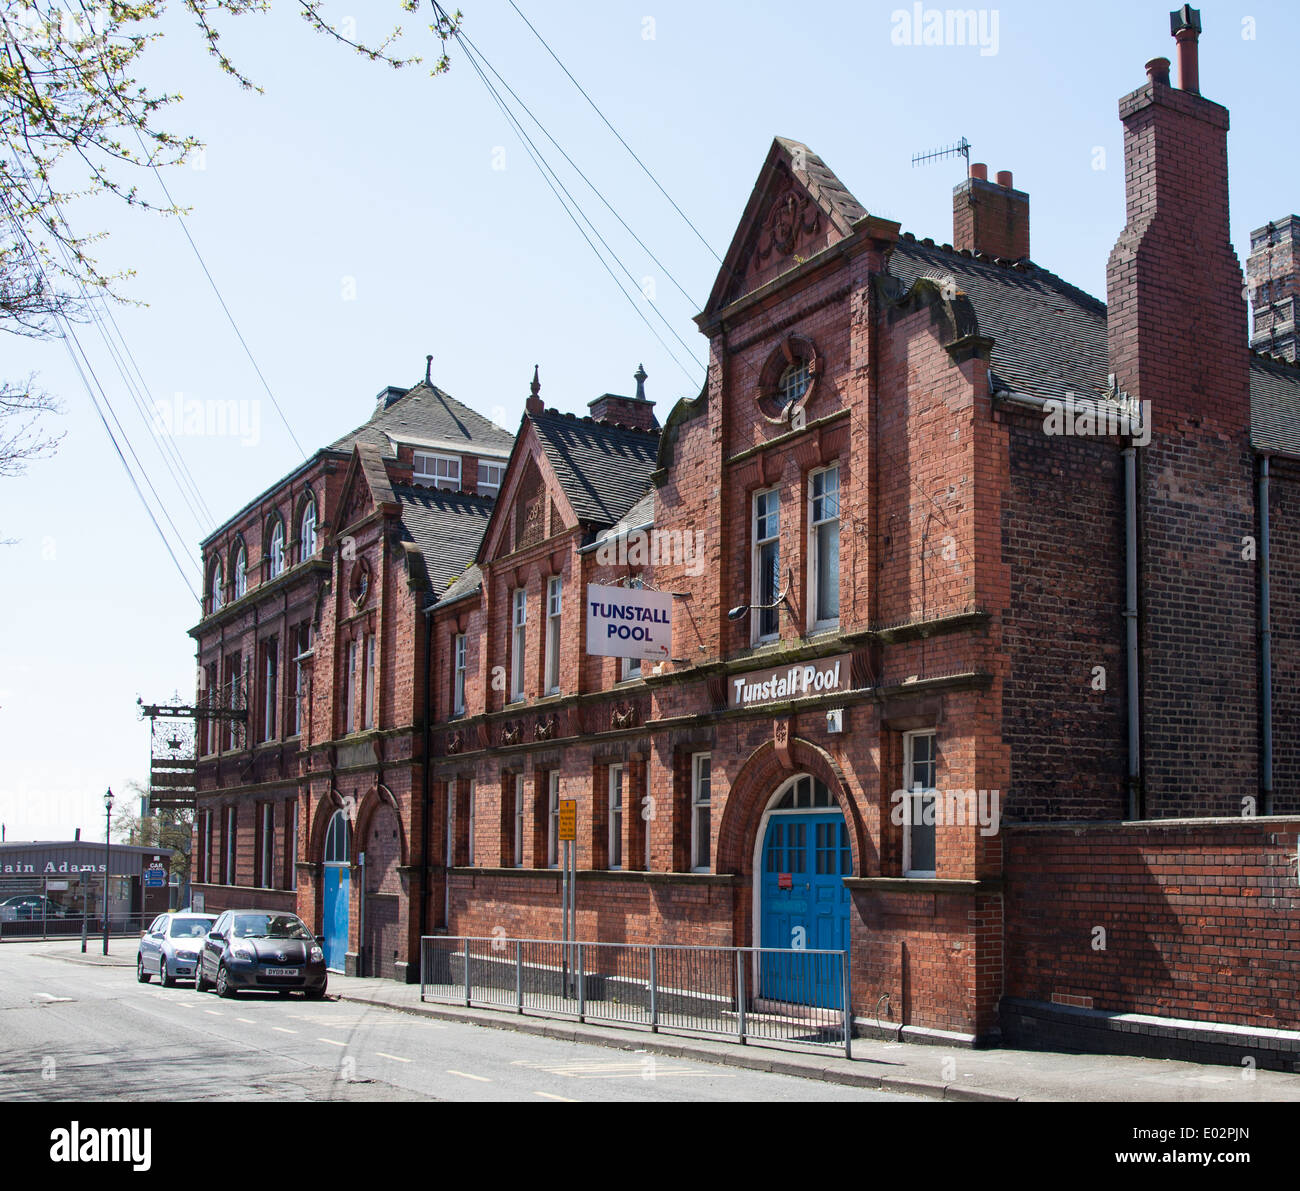 The Public Swimming Baths Of Tunstall Pool Stoke On Trent Staffs Stock Photo 68903149 Alamy